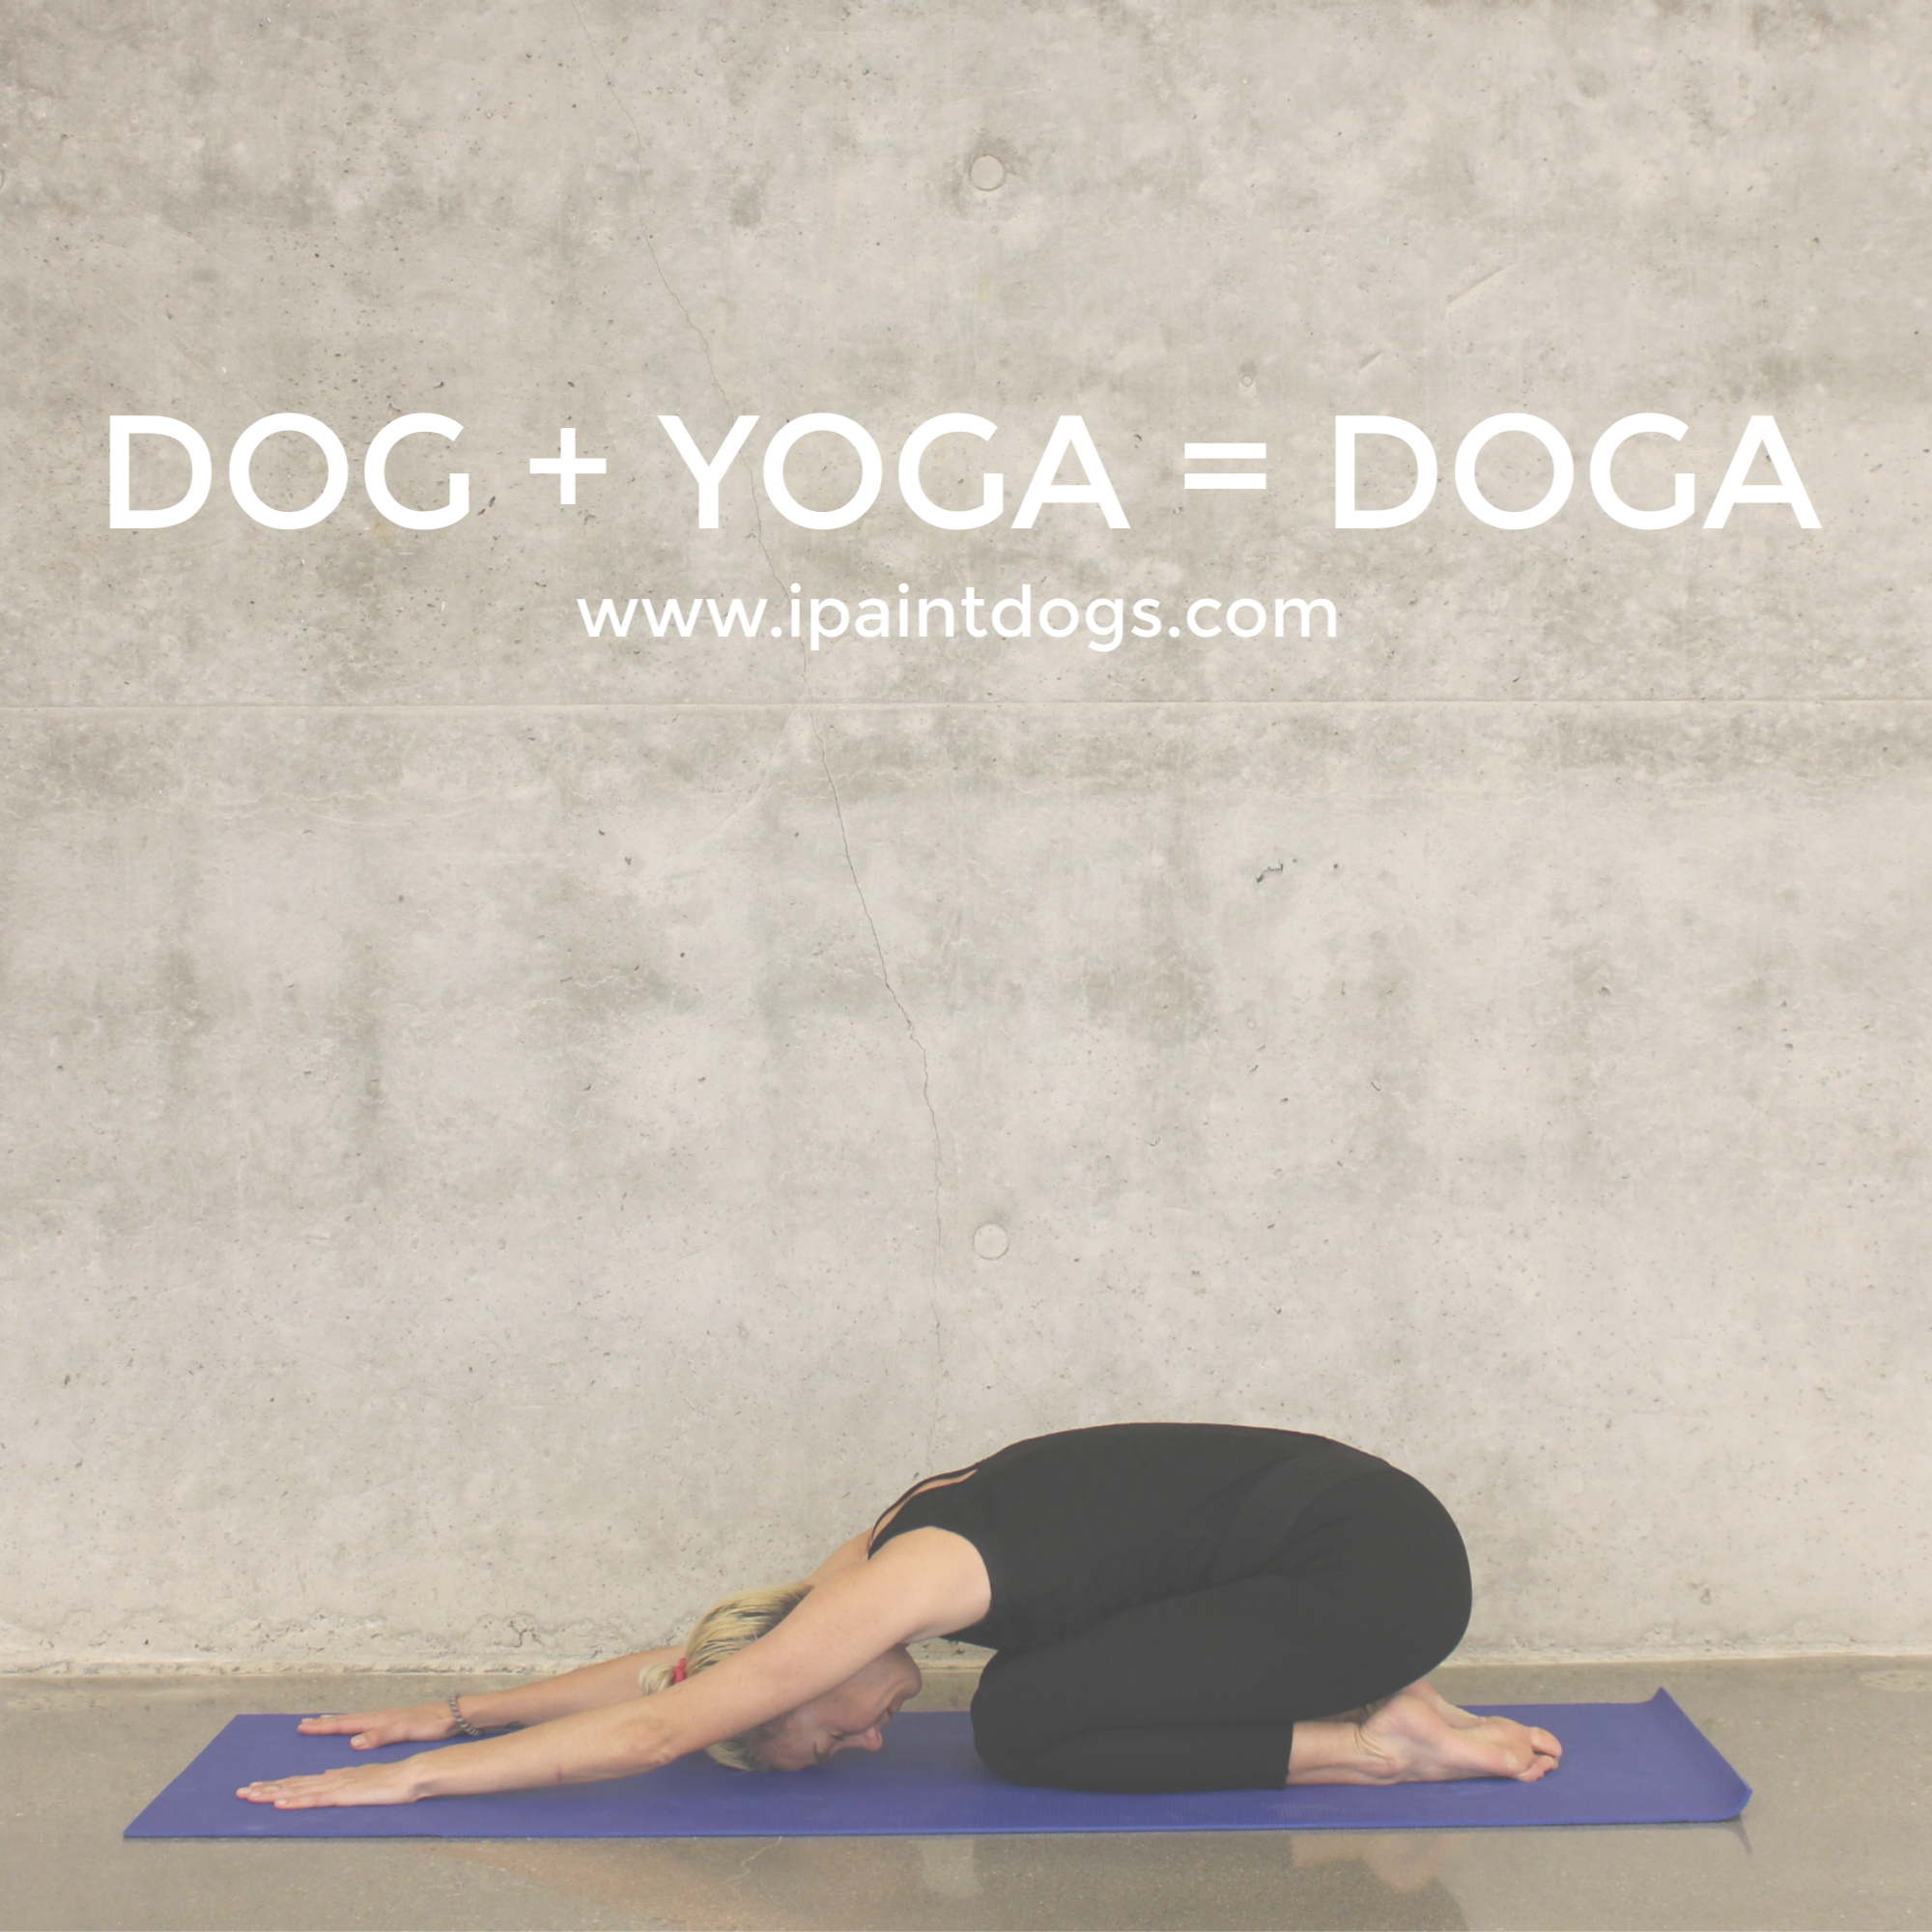 What is Doga?  www,ipaintdogs.com